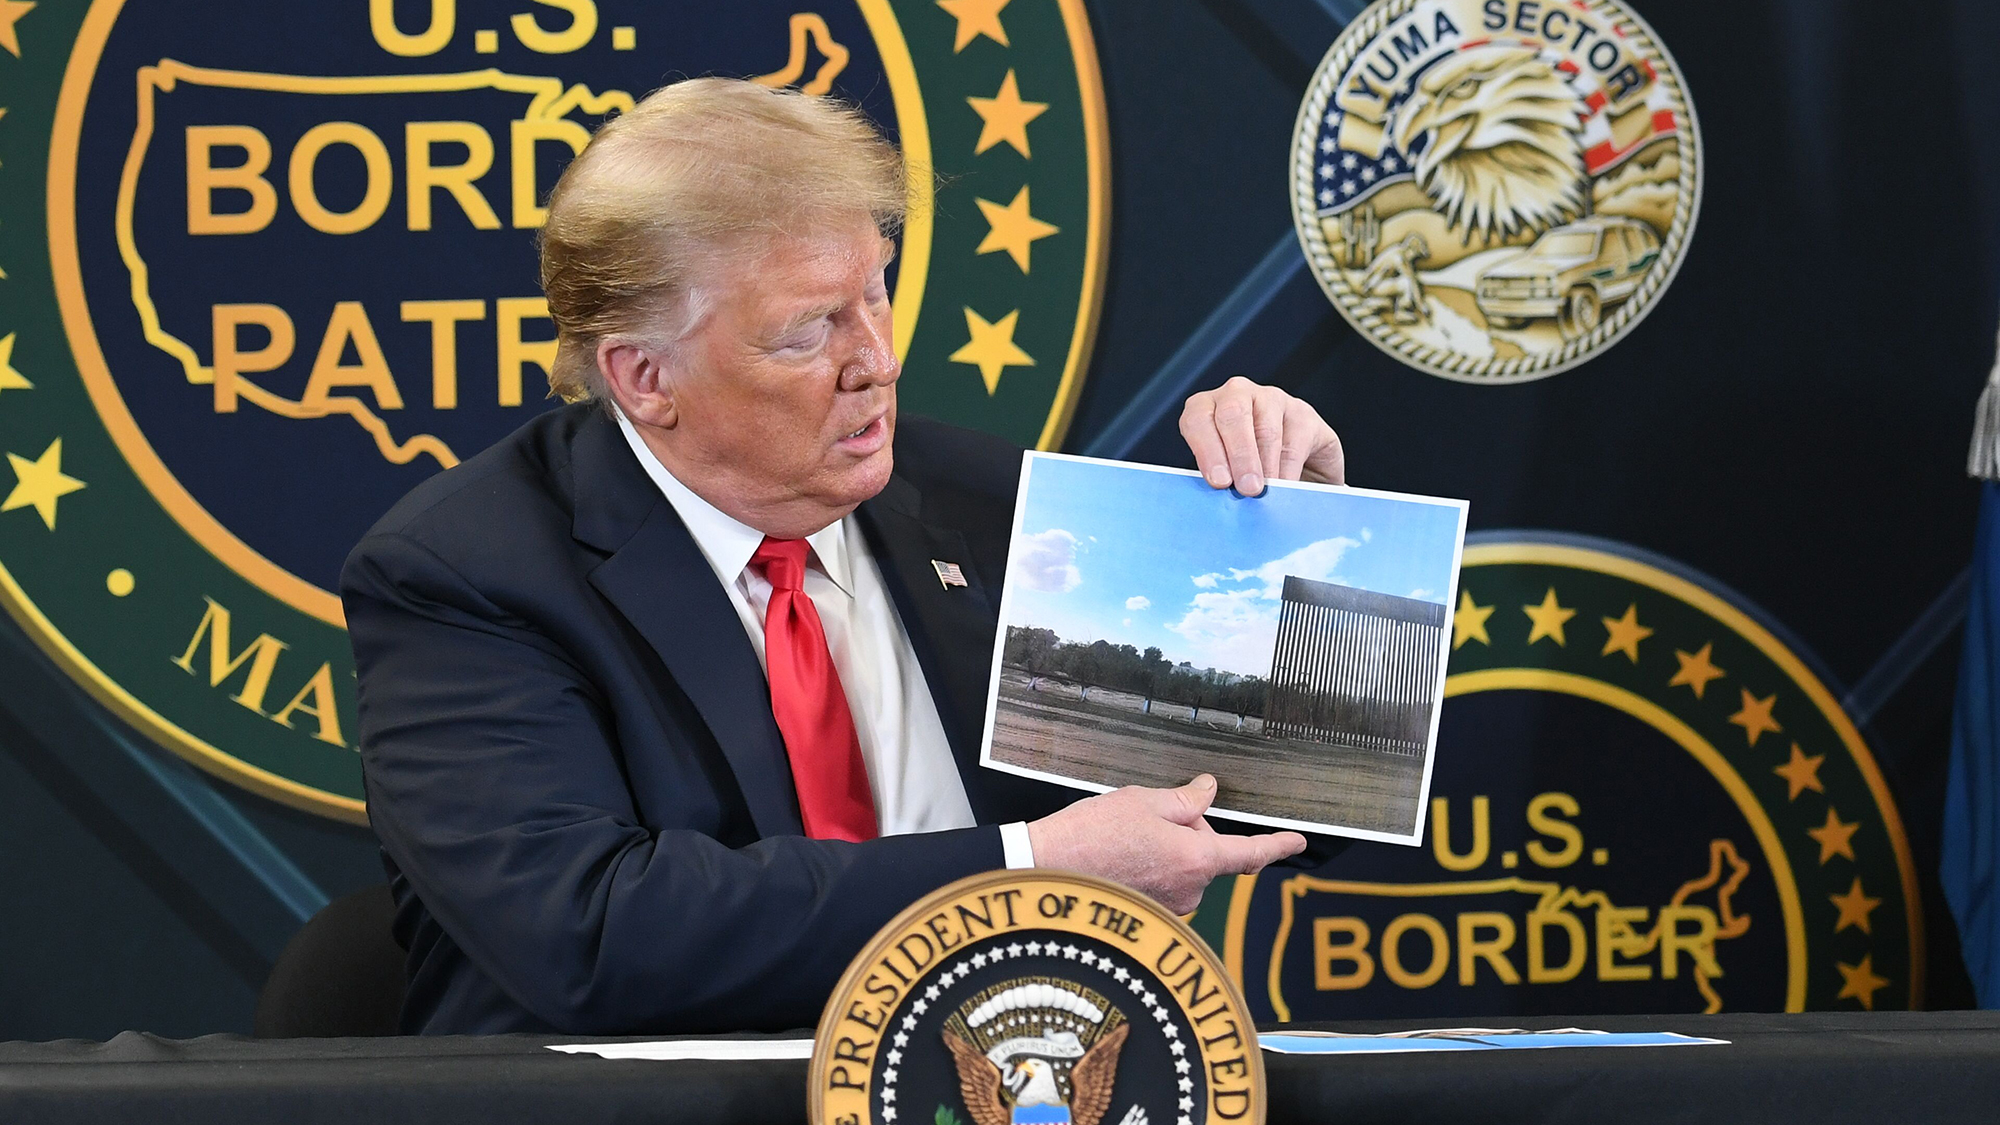 Supreme Court to hear challenges to Trump border wall funding and asylum policies